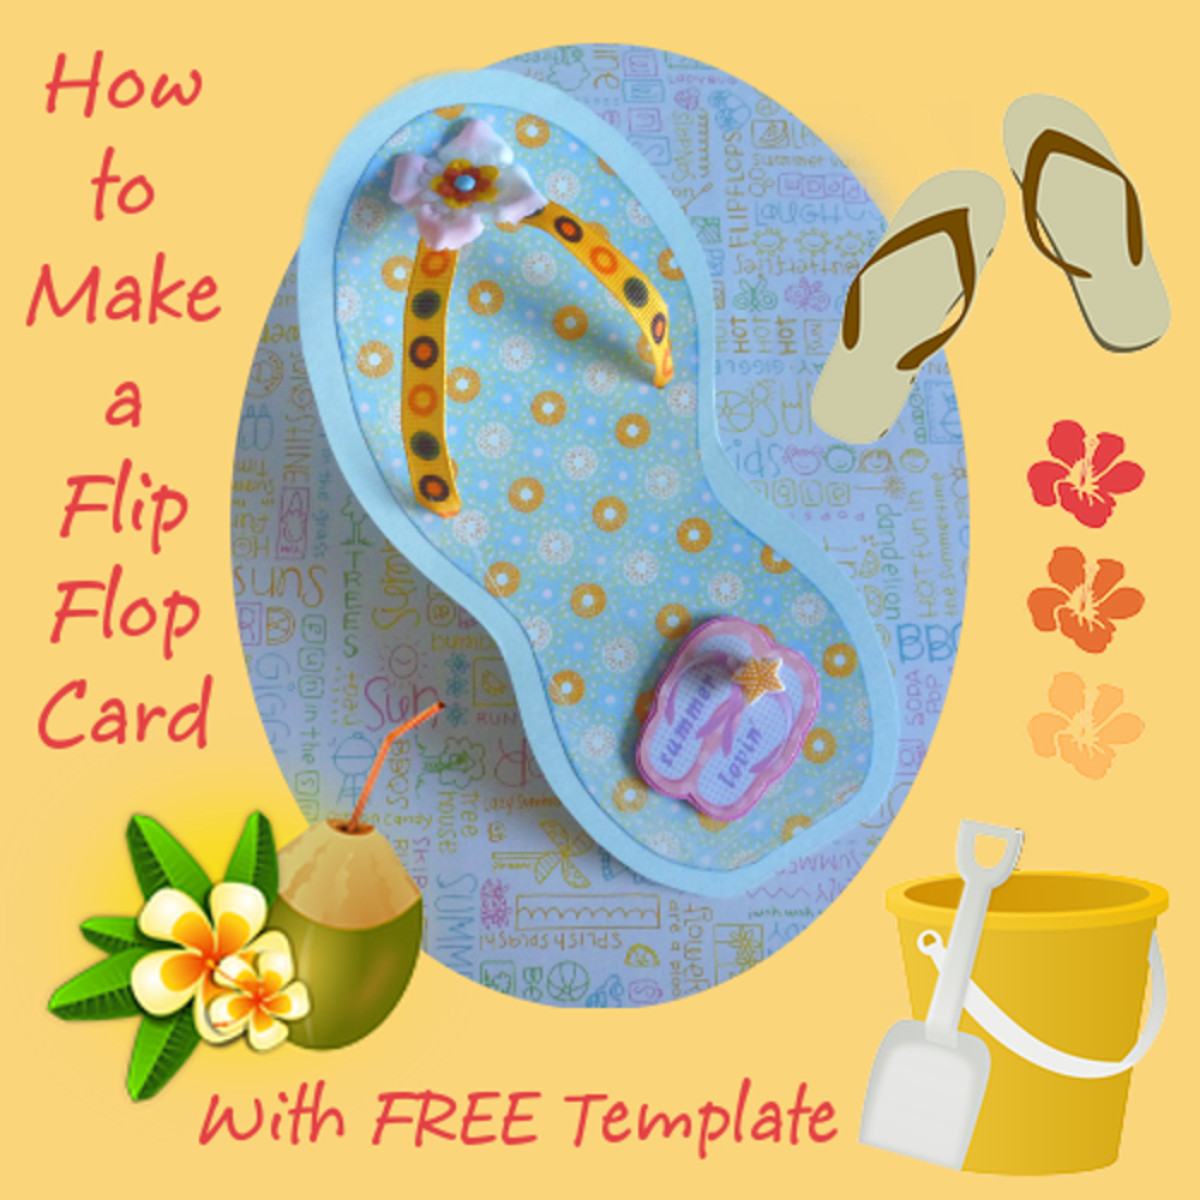 b051e42bb How to make a flip flop card with a free printable template to use. Summer